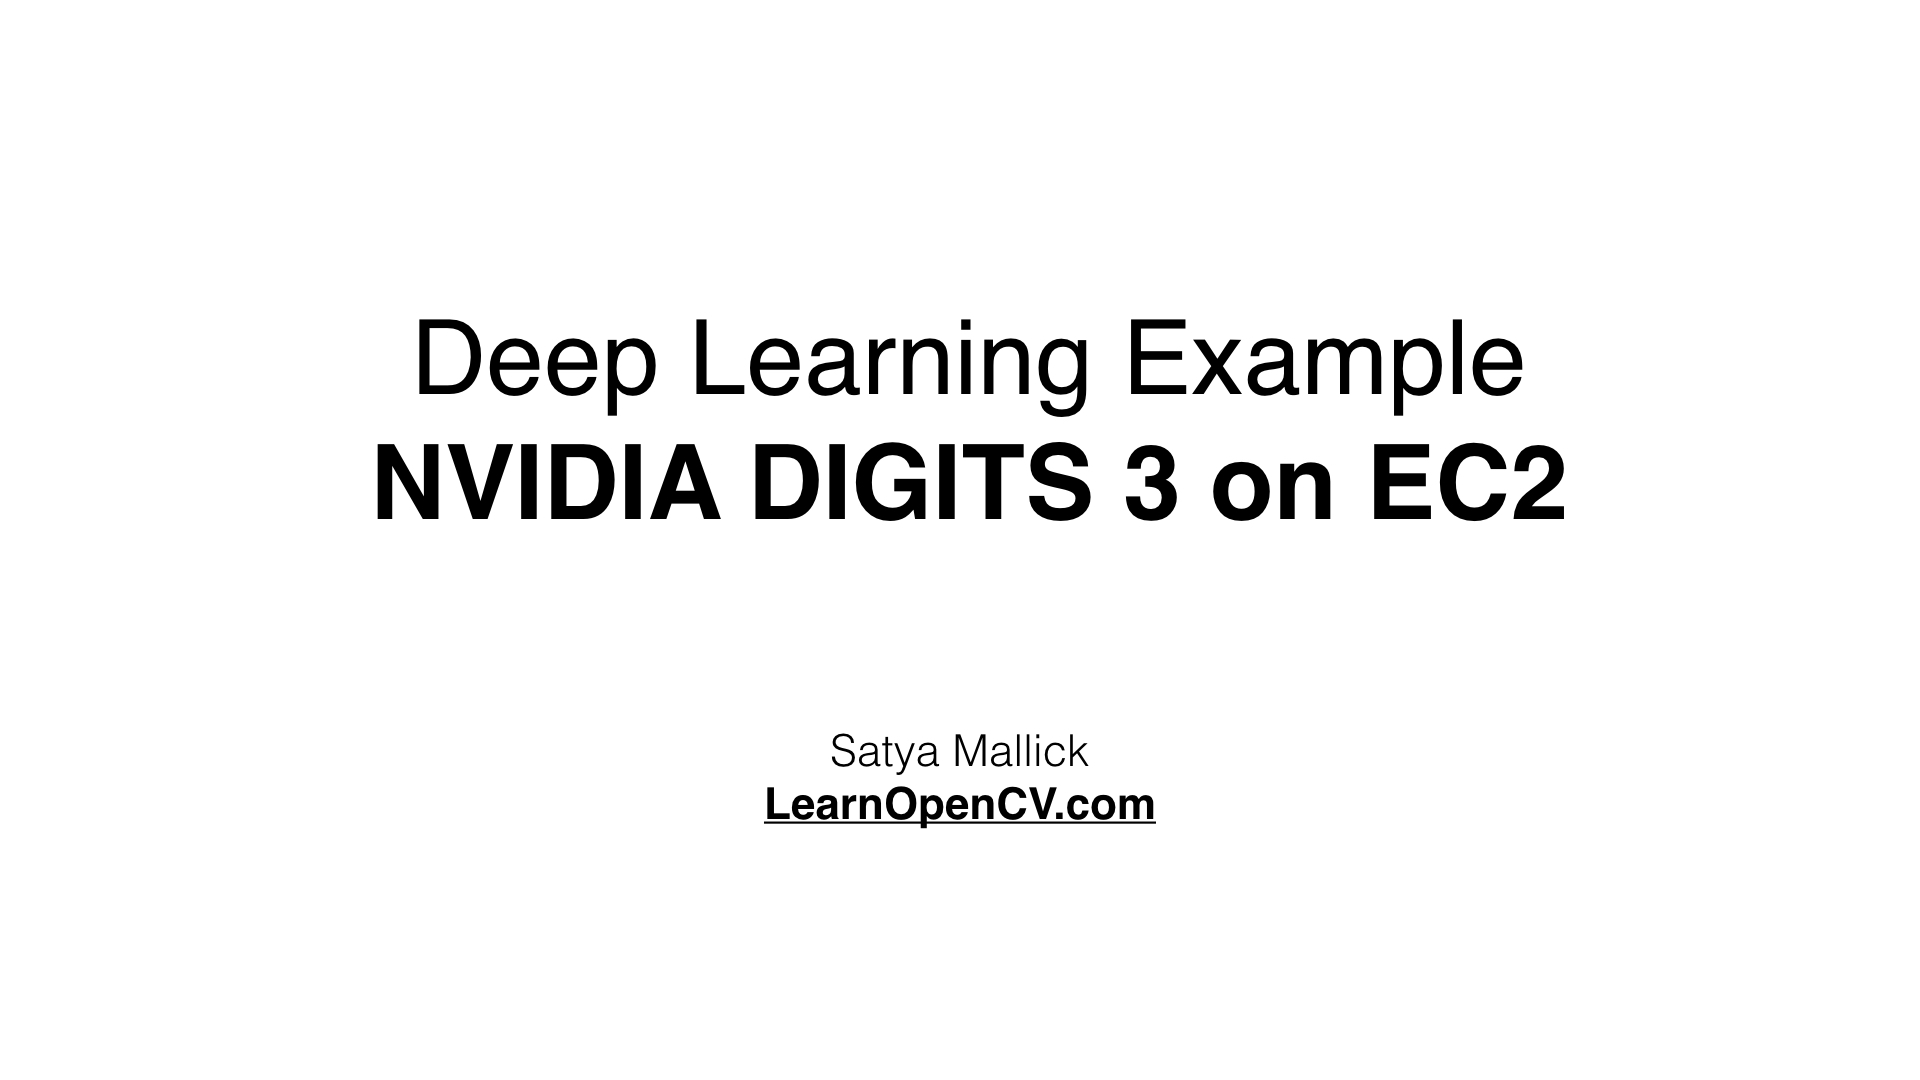 Deep Learning Example using NVIDIA DIGITS 3